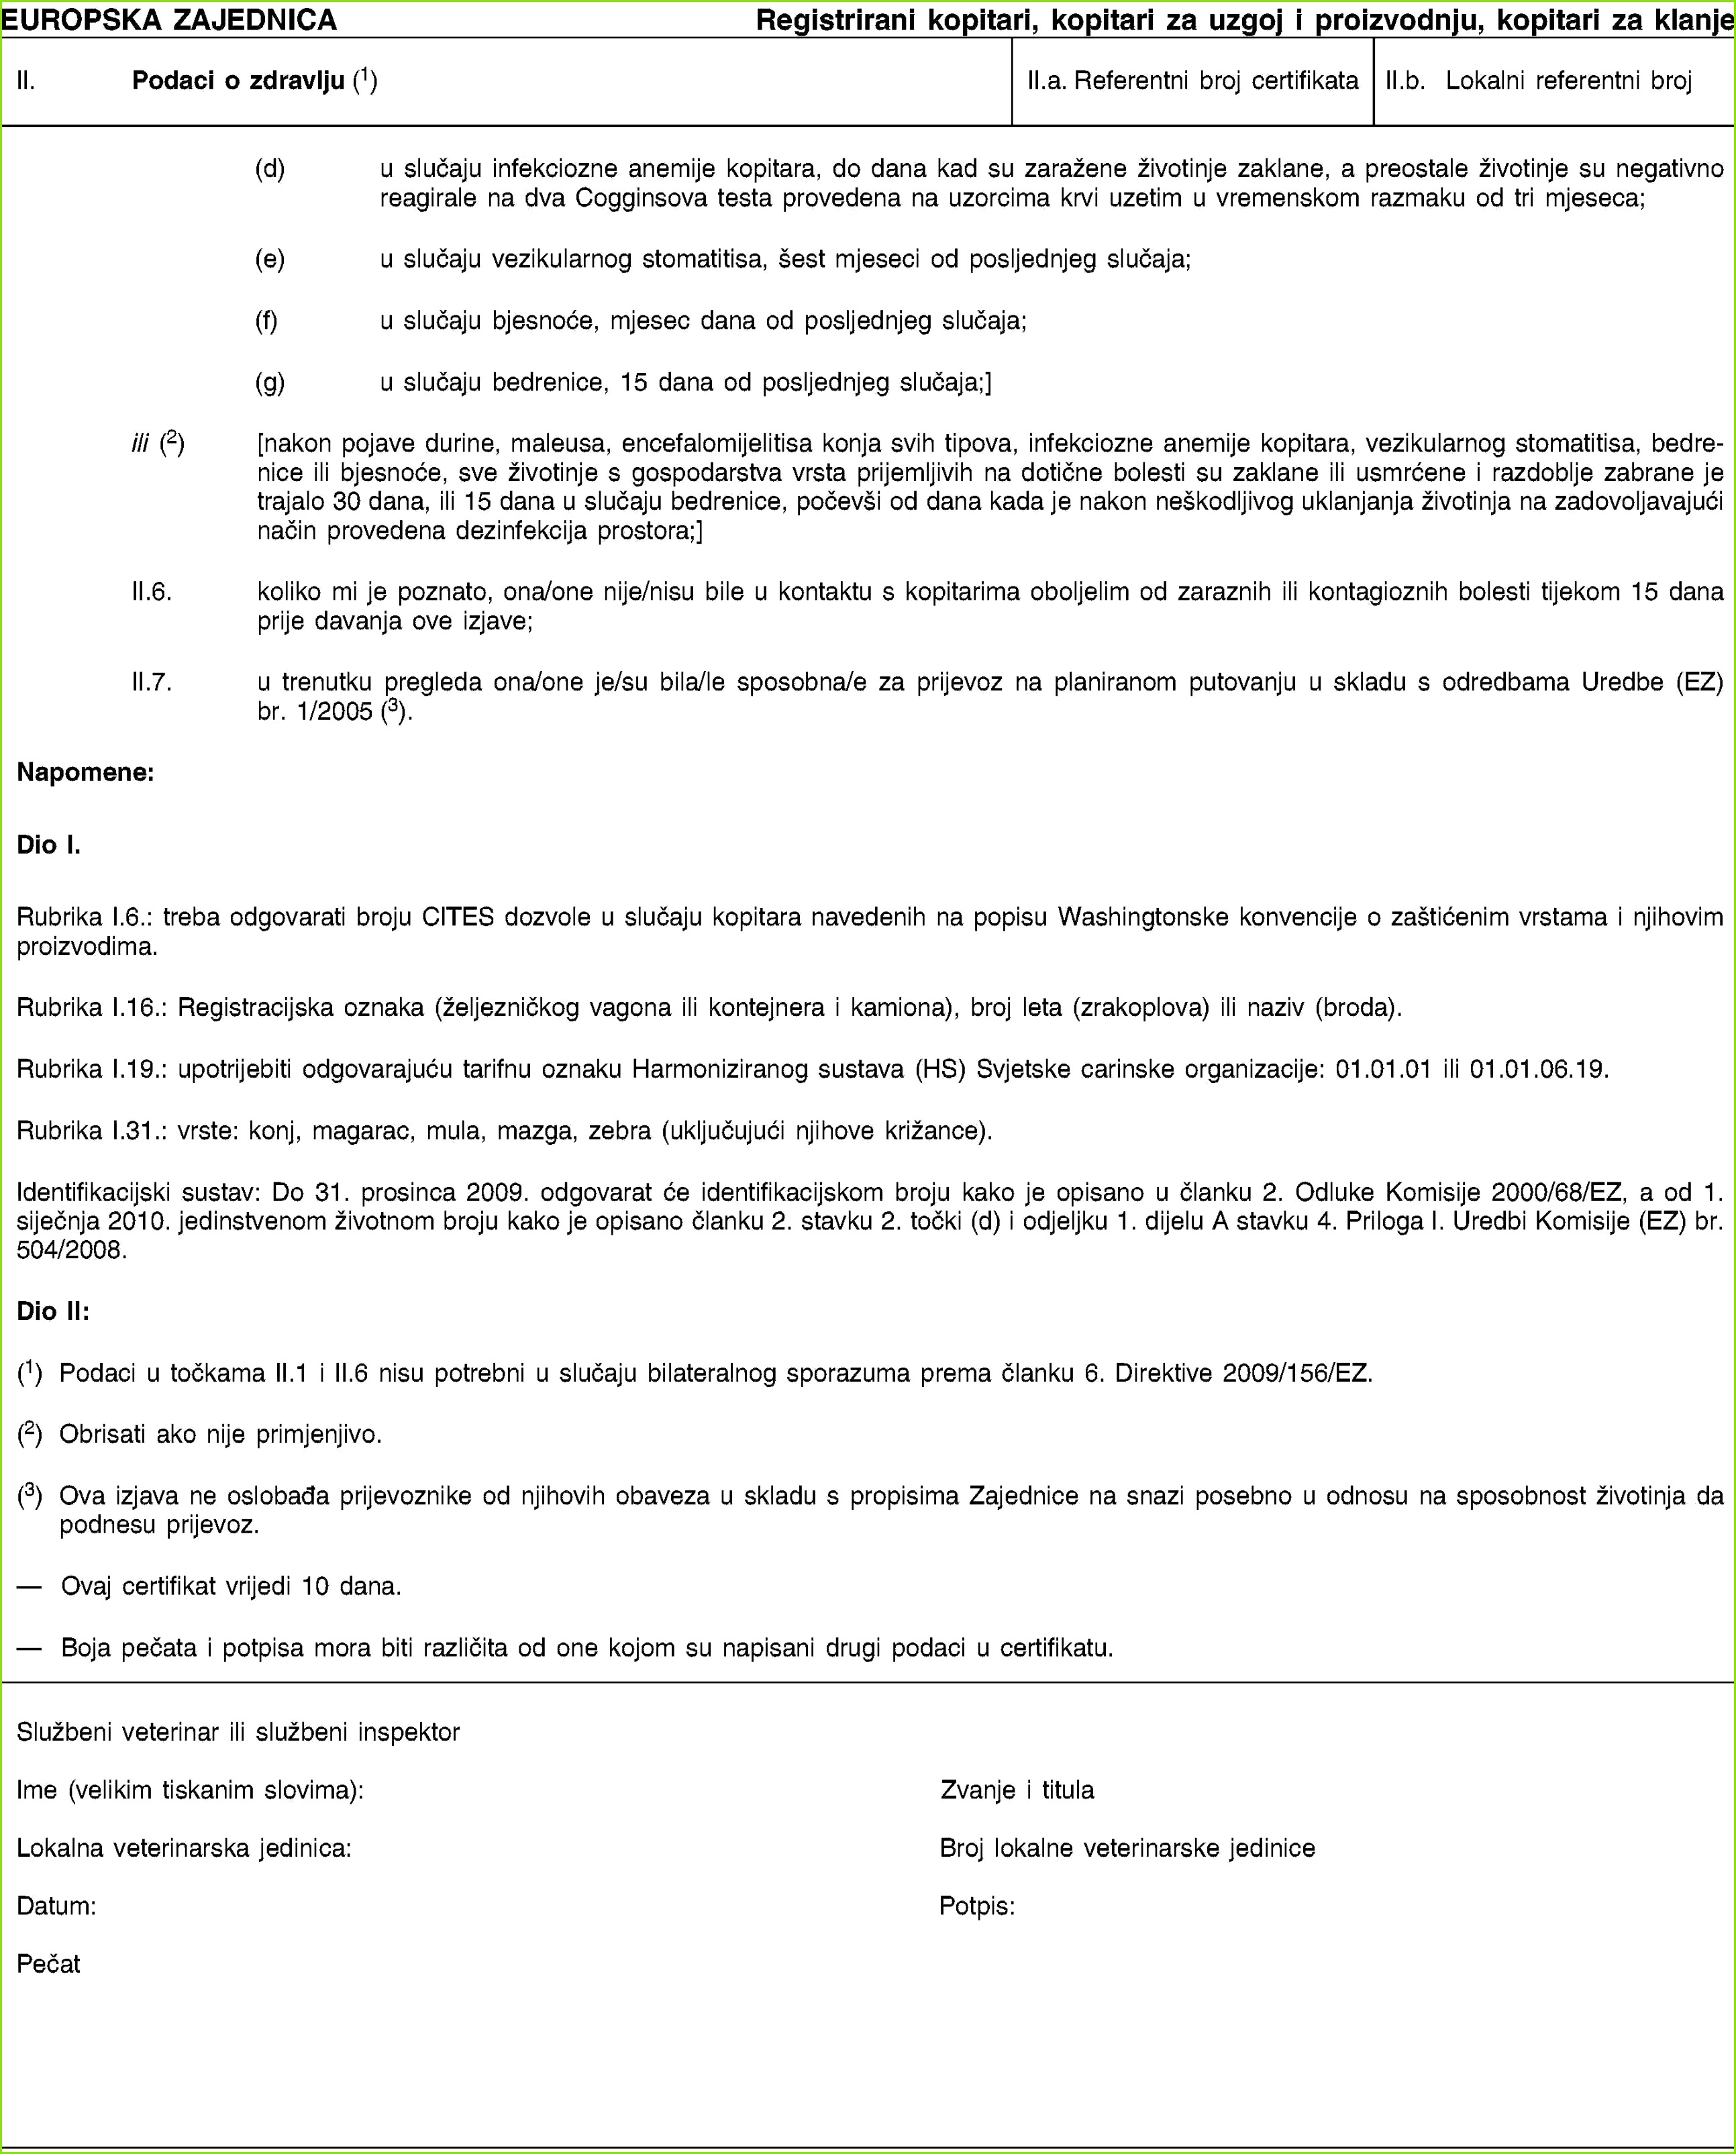 Joint Venture Agreement Template Lovely Joint Venture Agreement Template Pdf New 43 Luxury Joint Venture